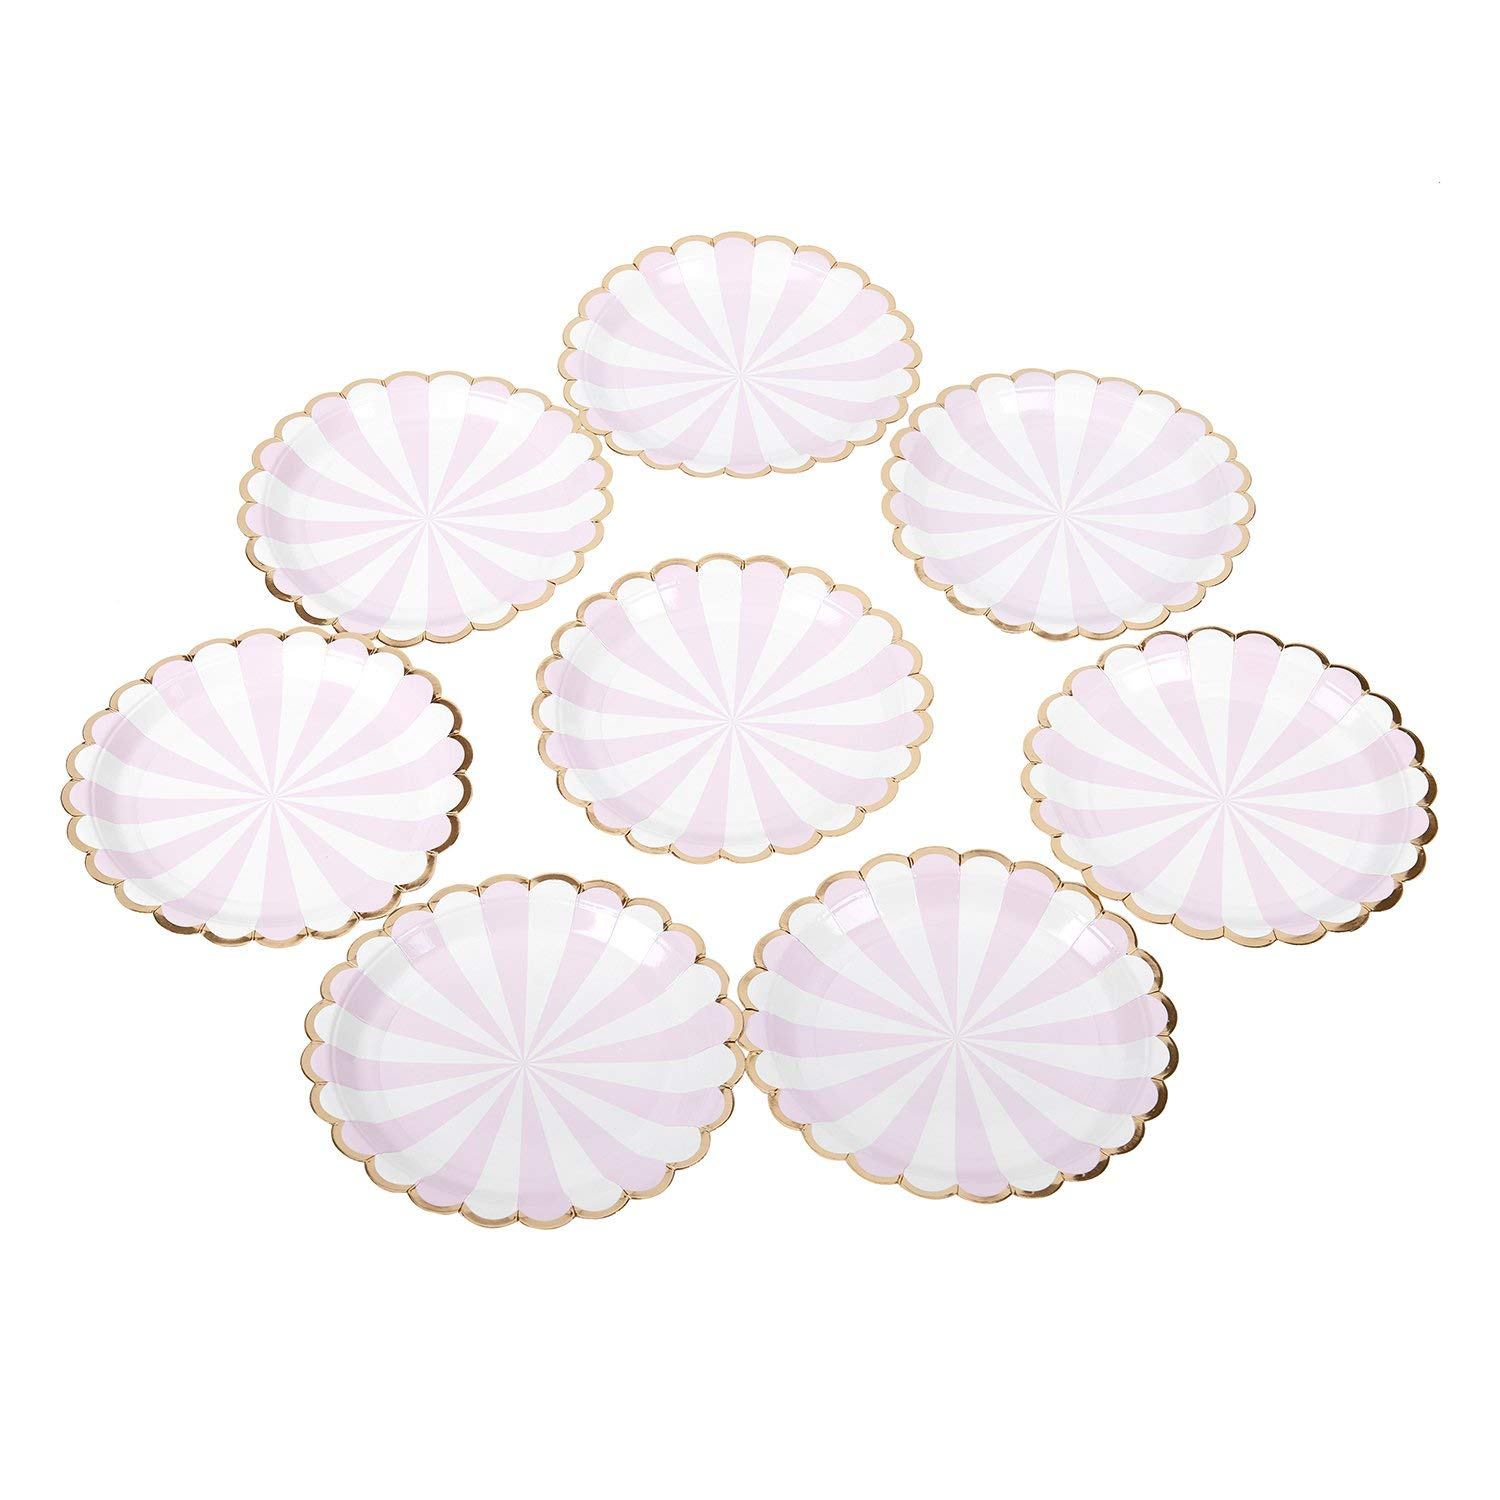 SODIAL Gilding High-end Disposable Tableware t Pink Striped Paper Plates Party Wedding Carnival Tableware Supplies